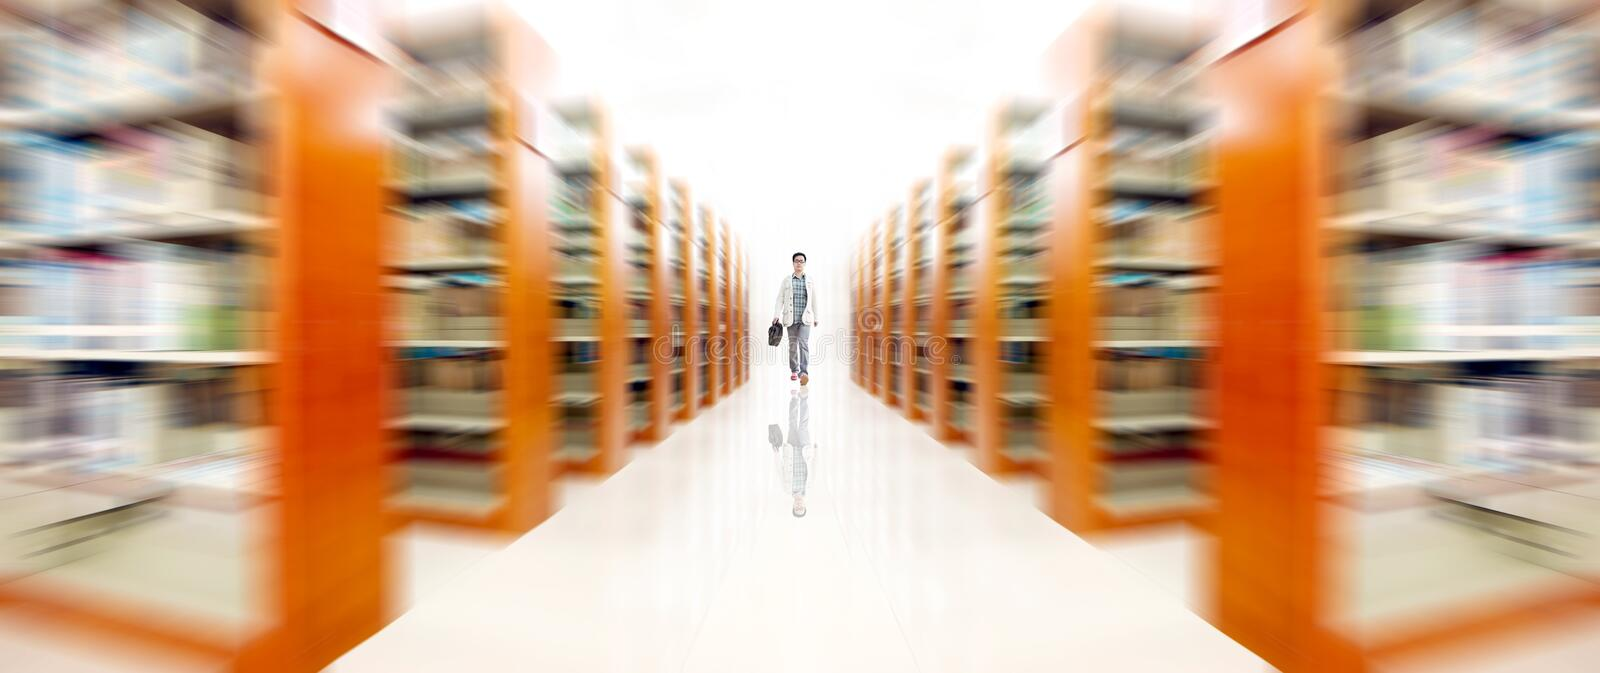 Library royalty free stock images